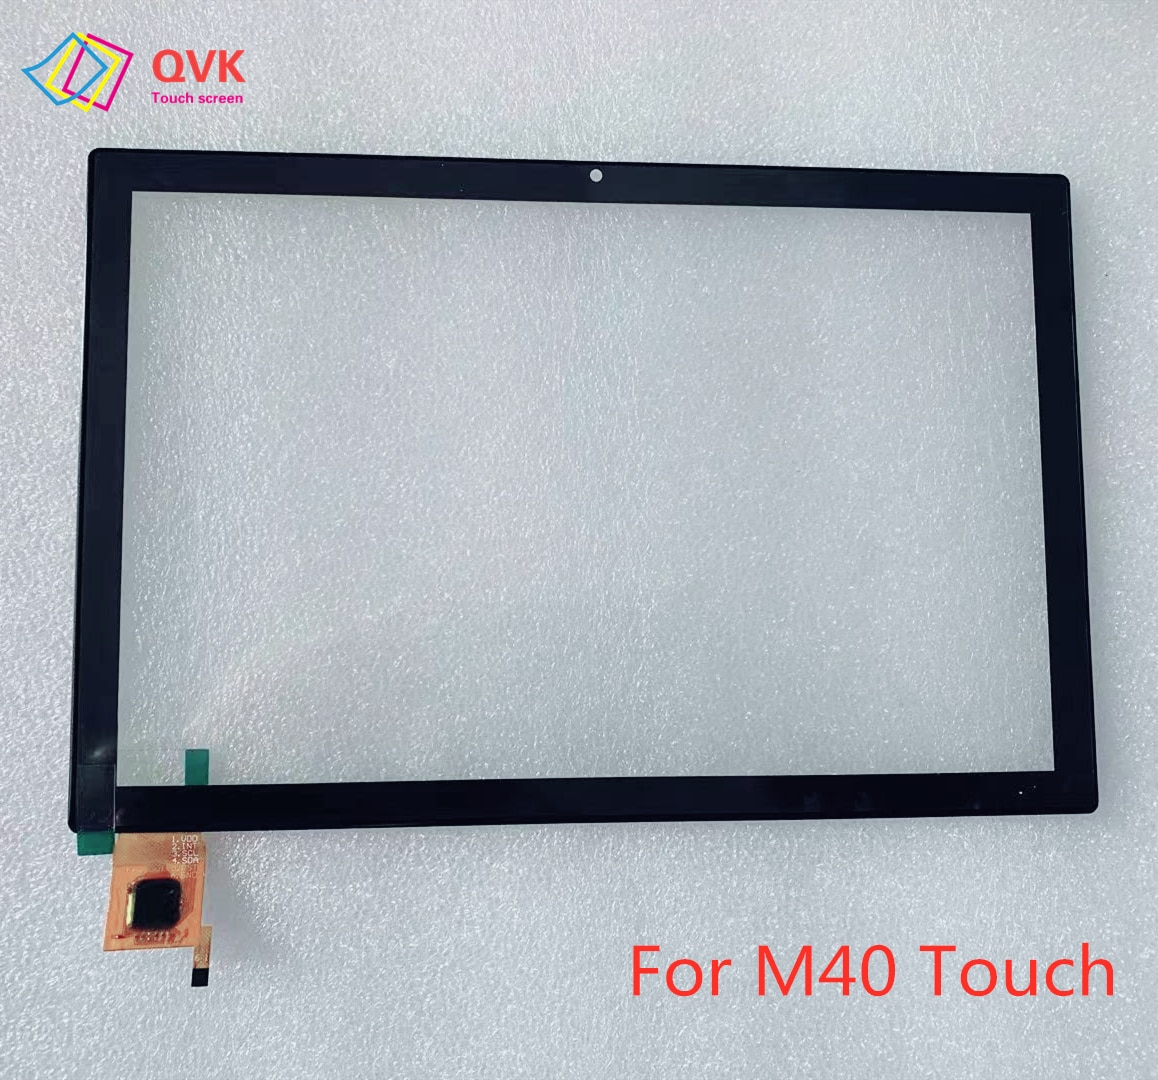 10.1 Inch Glass touch screen for Teclast M40 /M30 Pro/M20 4G/M30 Capacitive touch screen sensor panel for Teclast M30 touch